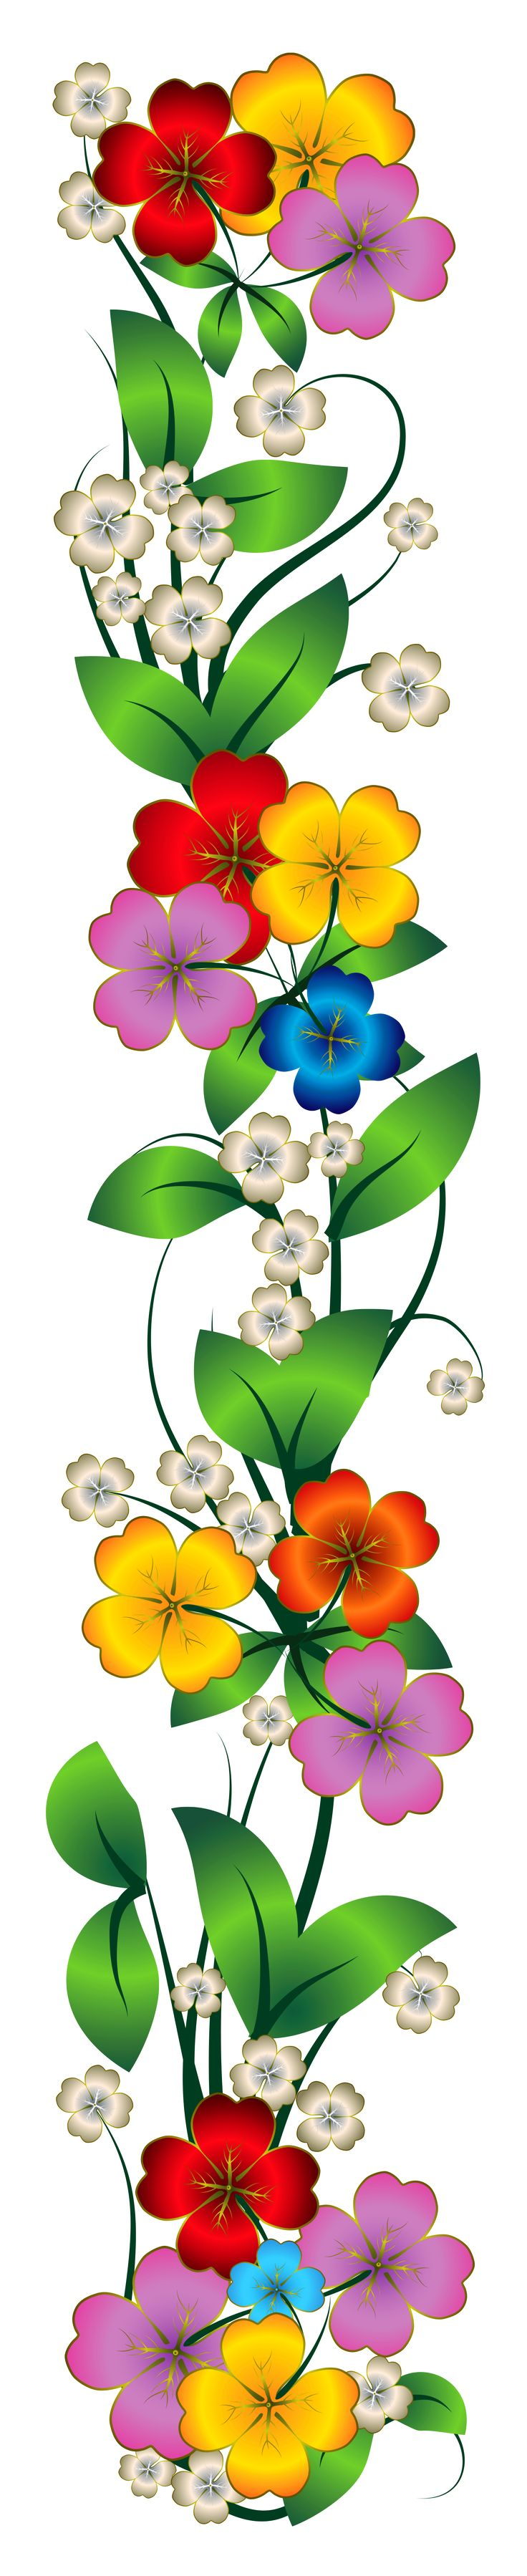 Decoration clipart may flower Of joy Pinterest Flowers The